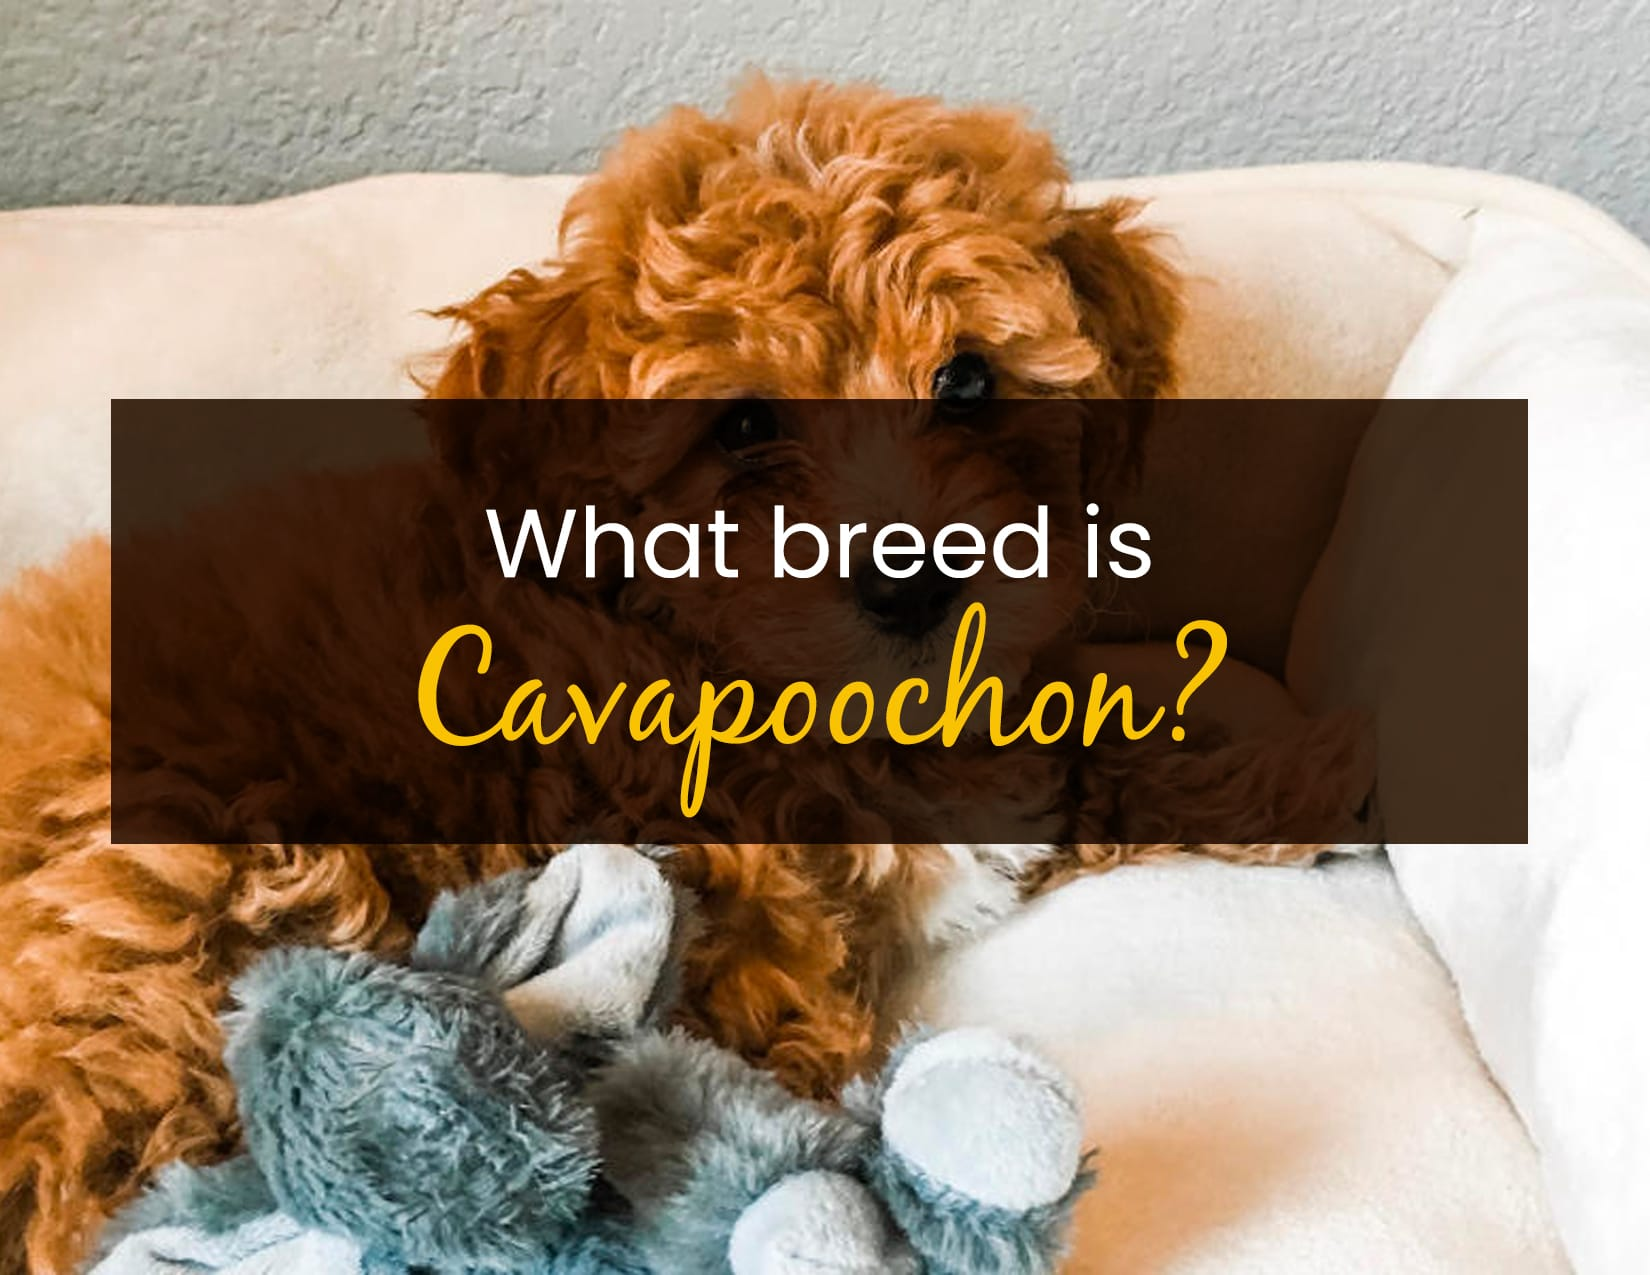 What breed is Cavapoochon